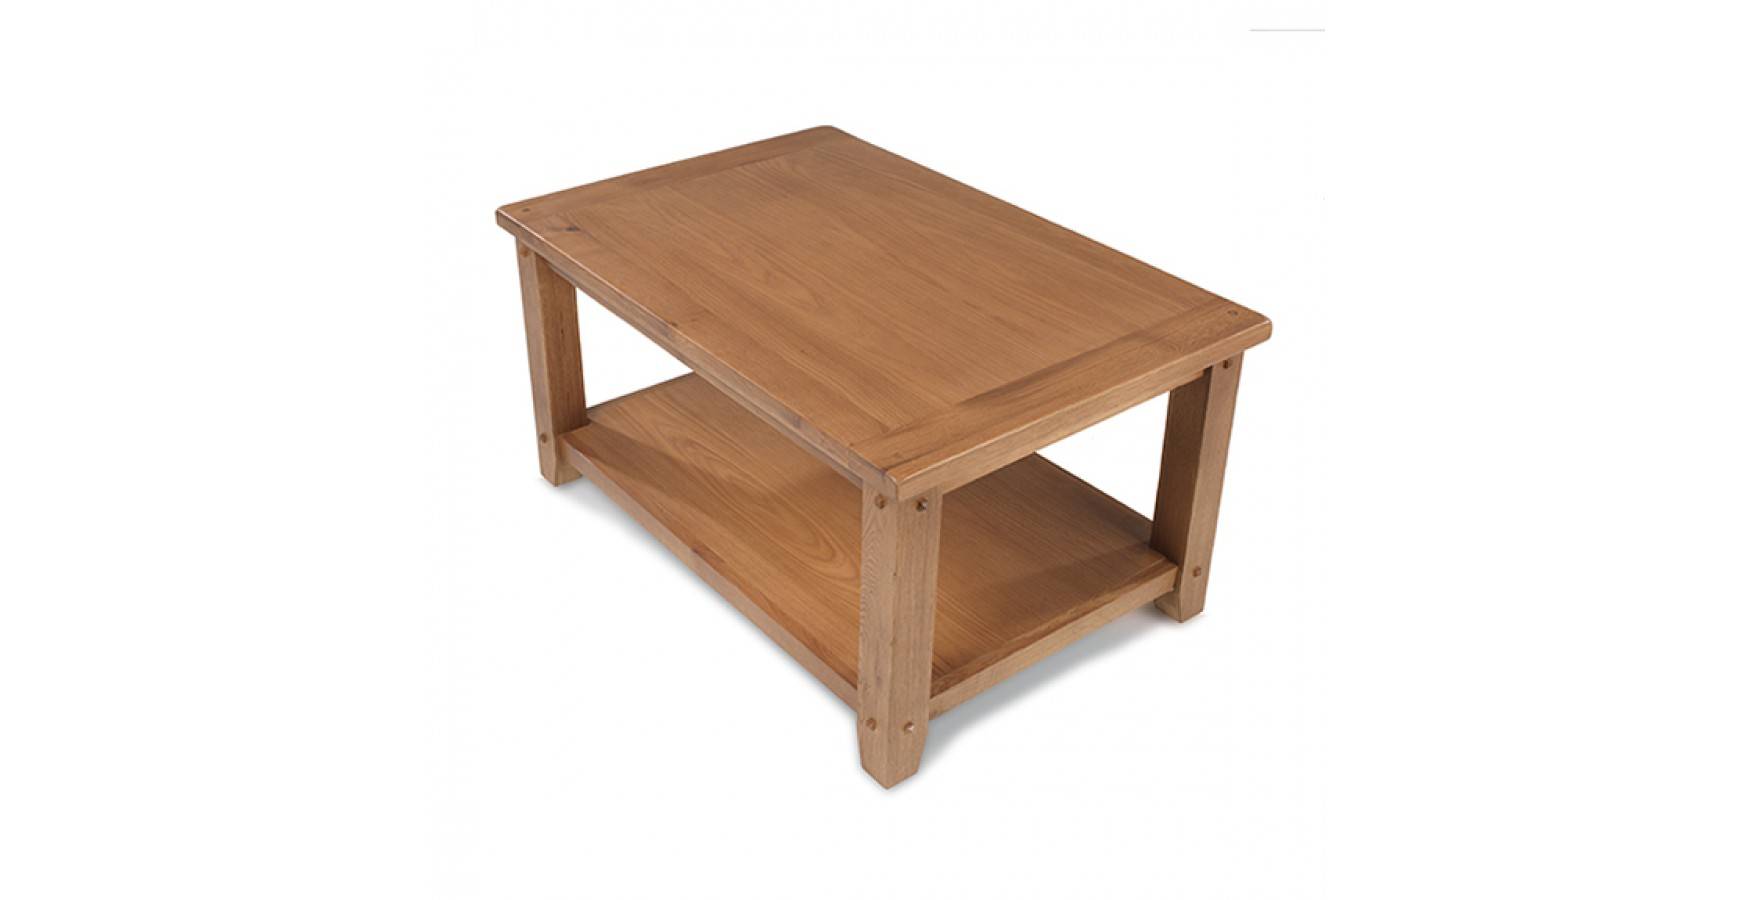 Rustic Oak Open Coffee Table Rustic Oak Open Coffee Table Lifestyle Furniture Uk Rustic Oak